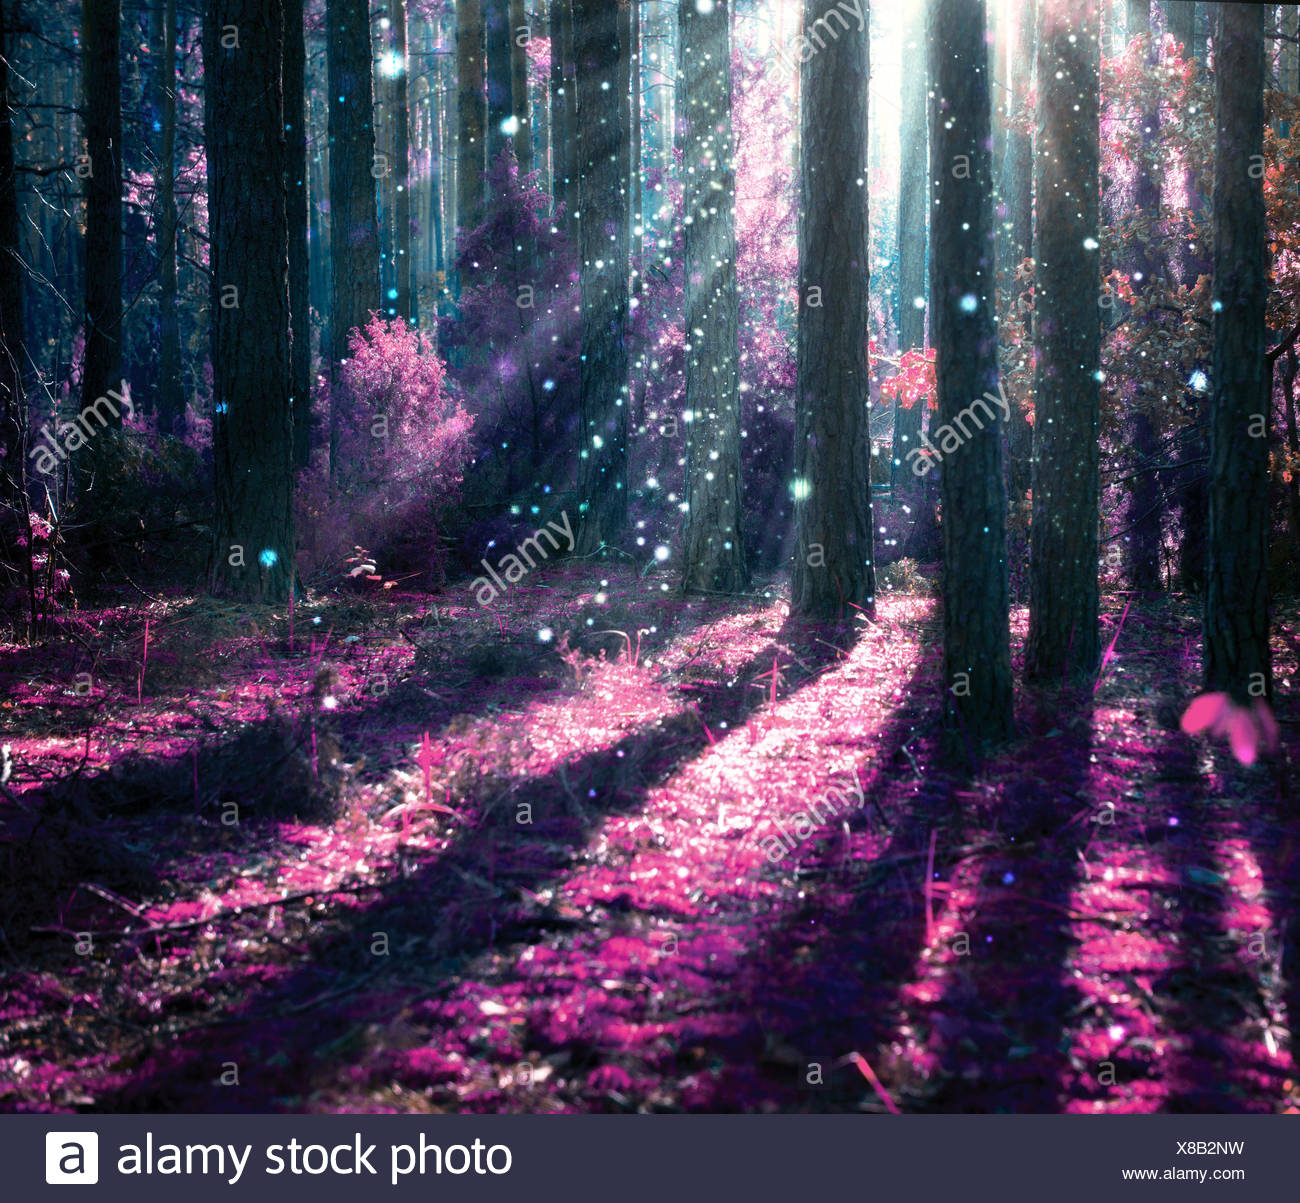 Fantasy Landscape. Mysterious Old Forest - Stock Image